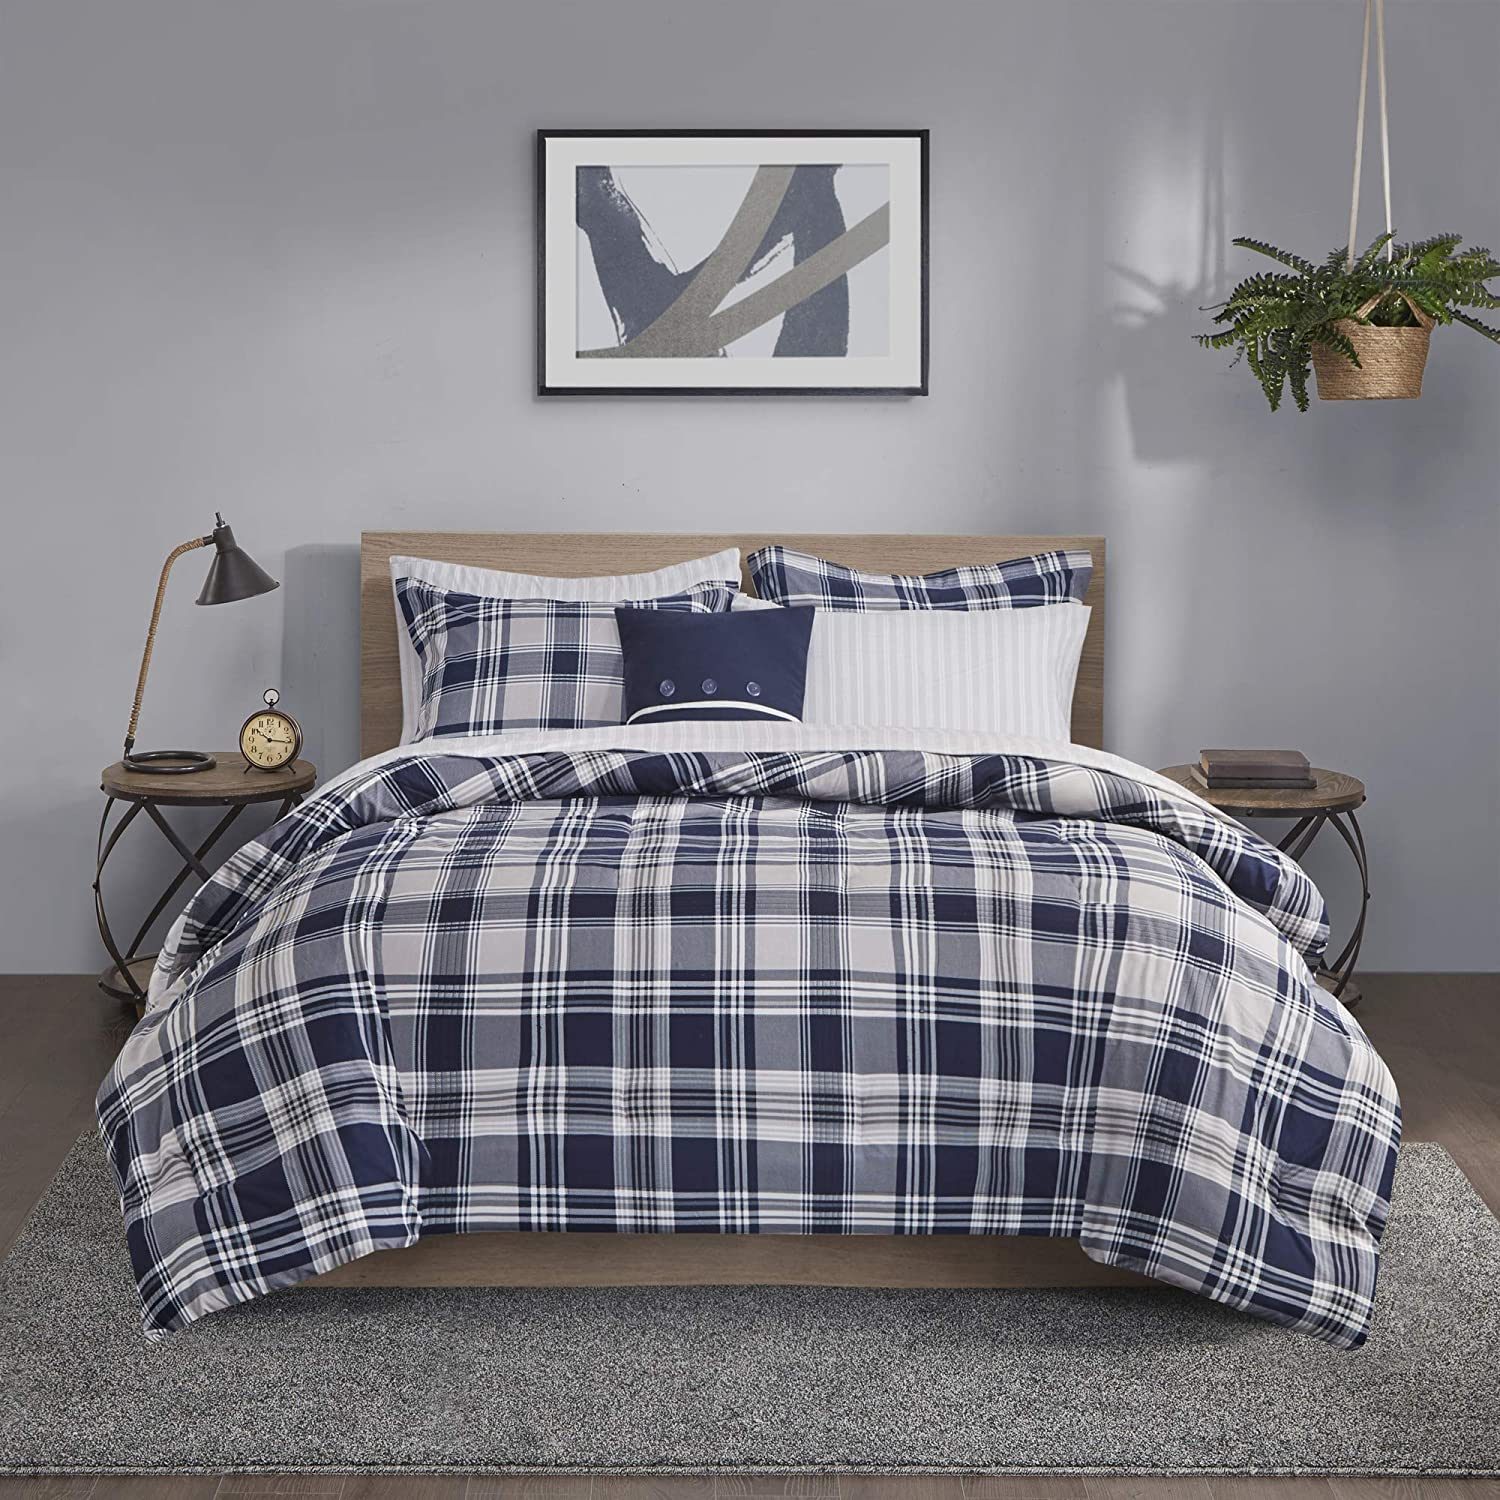 "Madison Park Essentials Patrick Cozy Bed in A Bag Reversible Comforter with Complete Sheet Set, Casual Plaid Cabin Design, All Season Cover, Decorative Pillow, Queen(90""x90""), Navy 8 Piece"